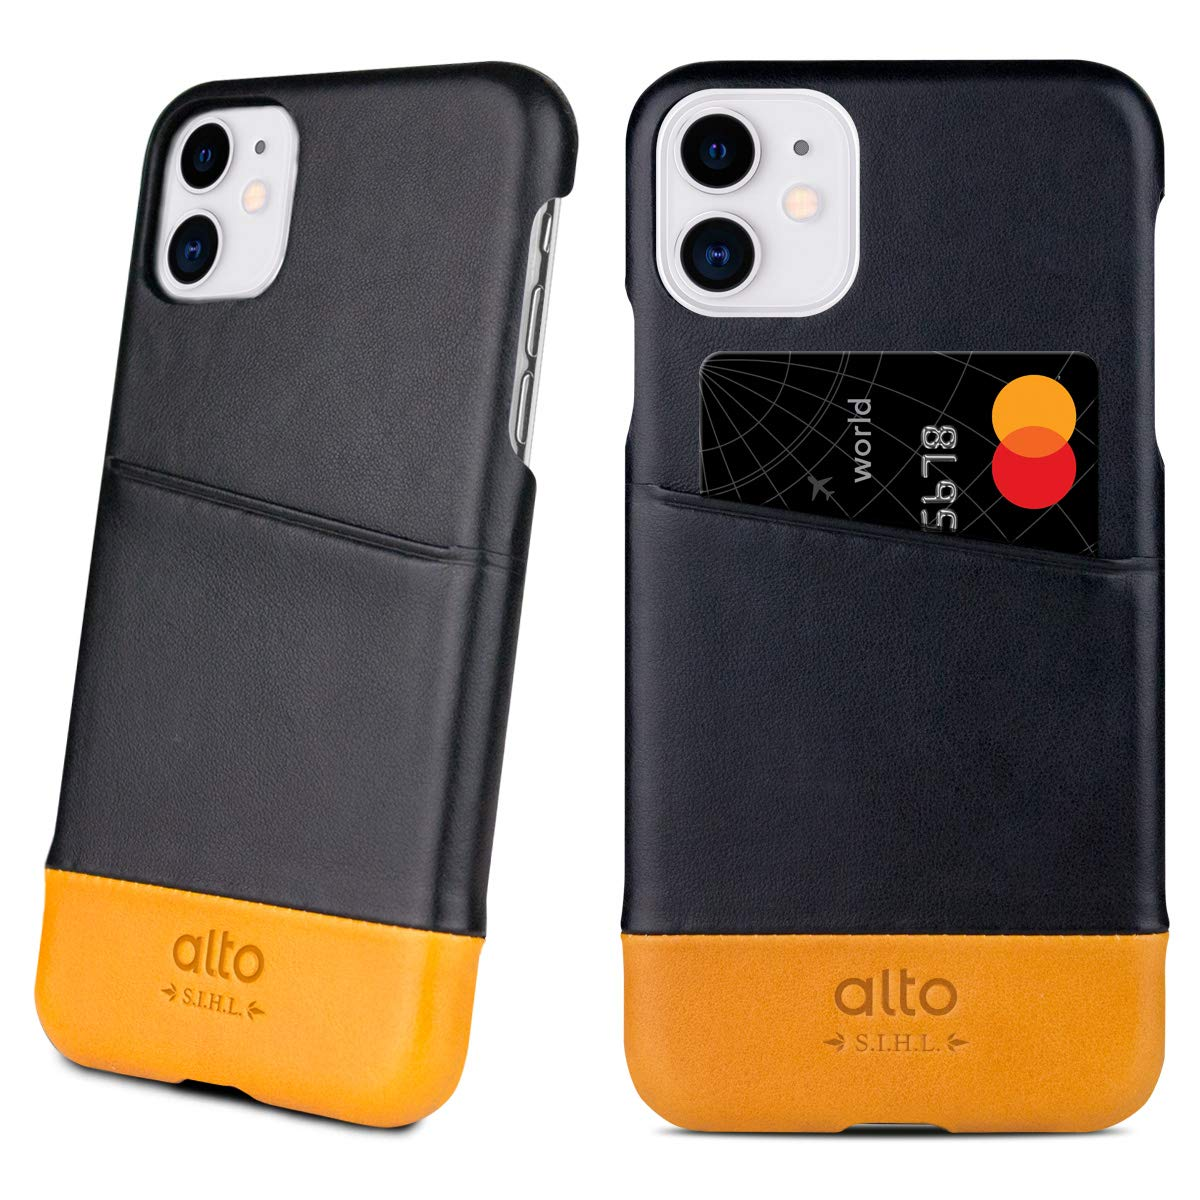 Alto Metro Phone Case for iPhone 11 (6.1 inch), Premium Handmade Italian Leather Wallet Case with Card Holder Design (Raven Black'/Caramel)